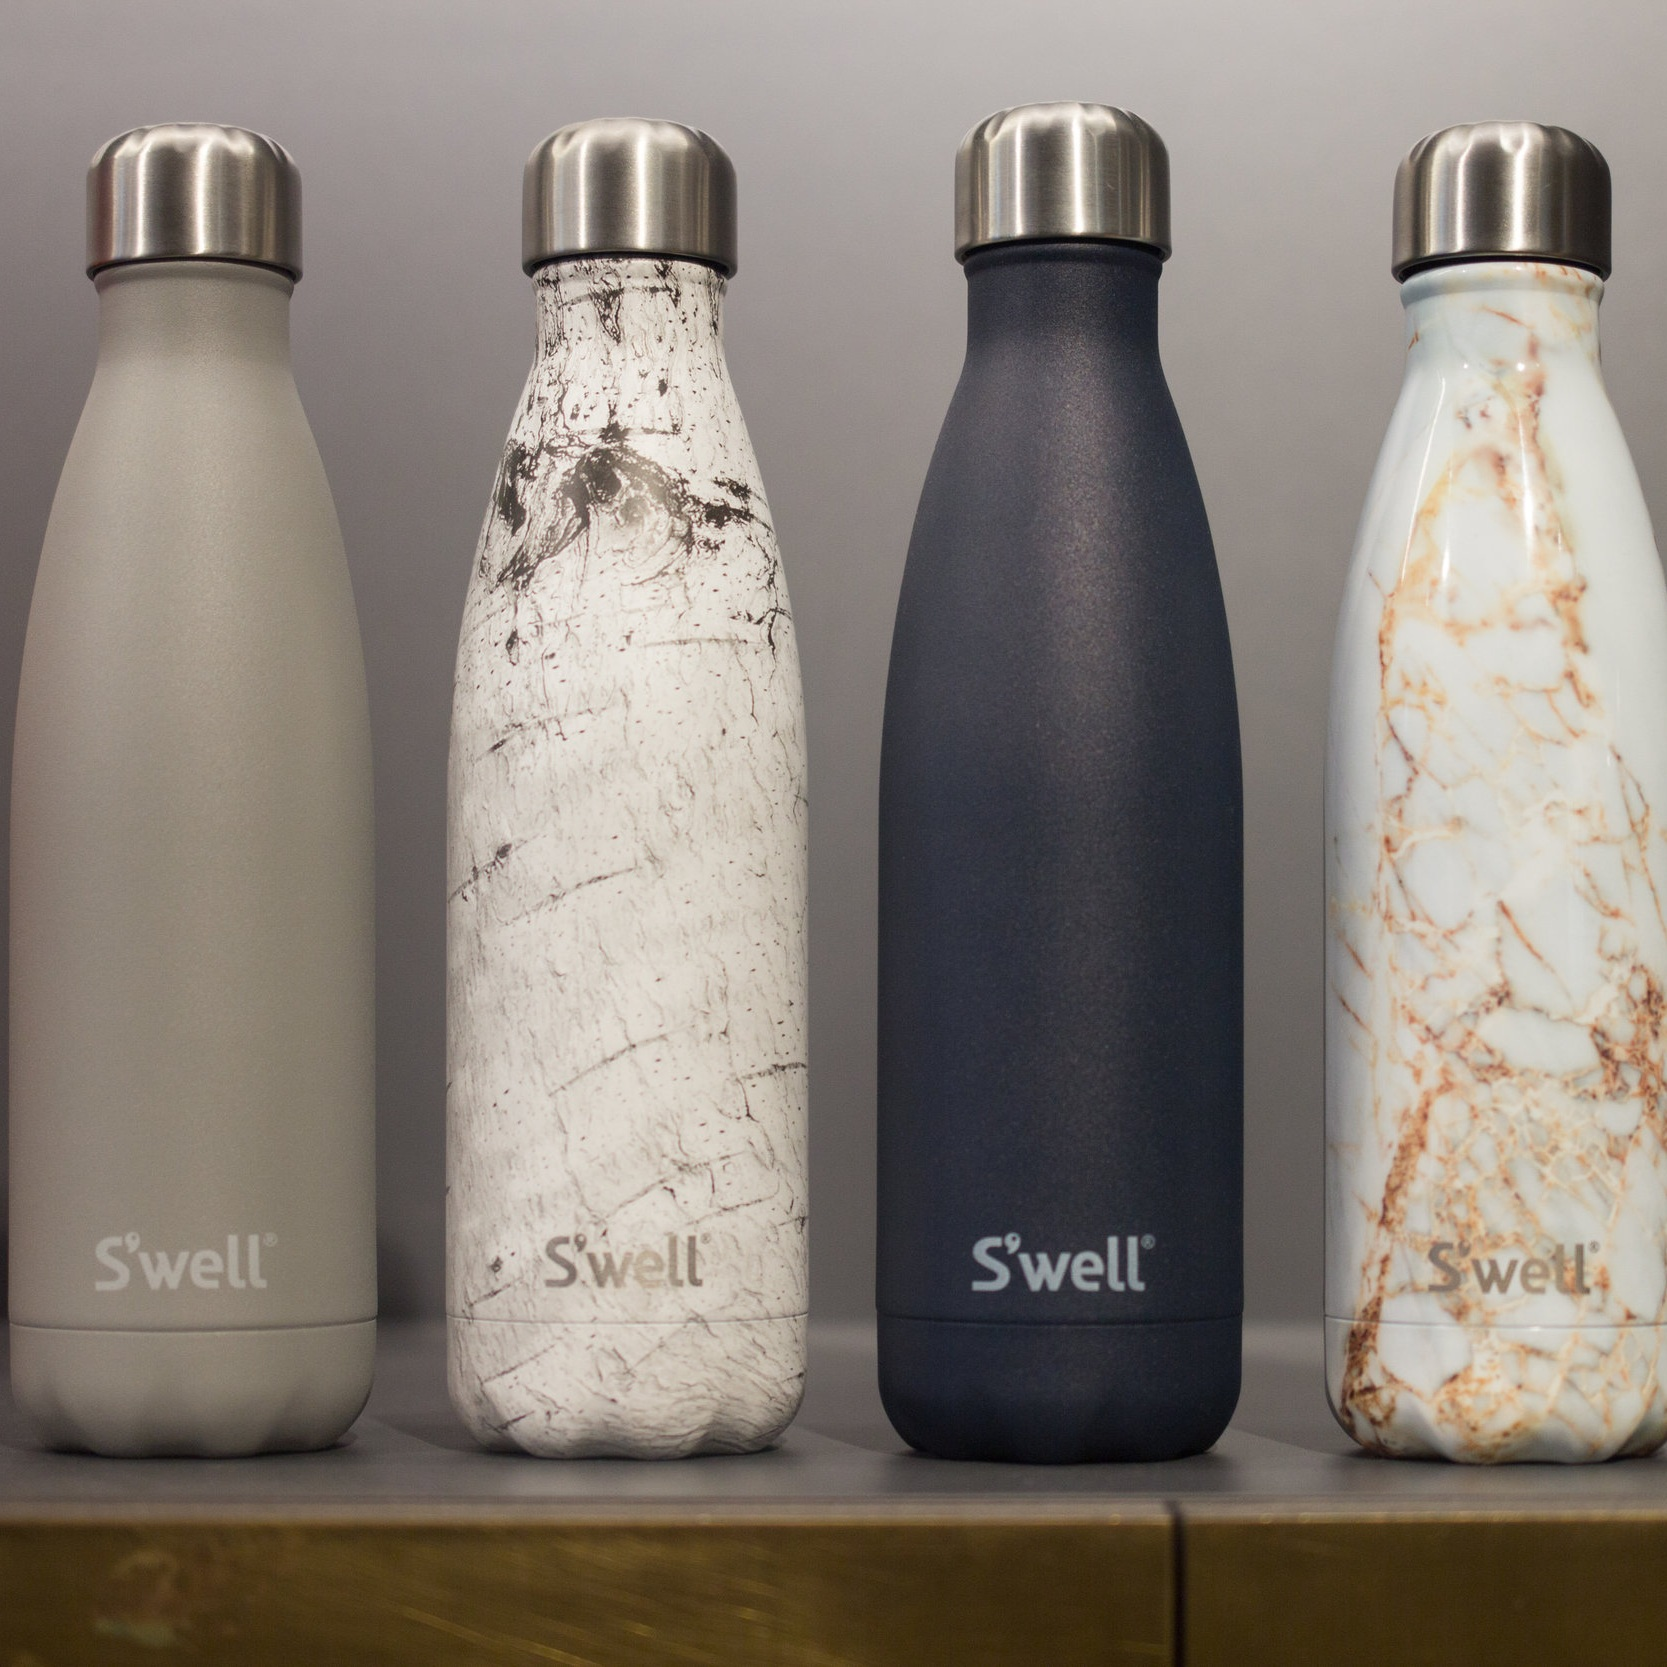 1. REUSE - A discarded plastic bottle takes more than 500 million years to decompose. Investing in a reusable water bottle is a step in the right direction.Have a look at the eco-friendly bottles we offer, such as the triple-walled S'well bottles. And in case you forgot to bring your bottle, you can rent a BPA-free one from us and re-fill it with our filtered Leogant water.